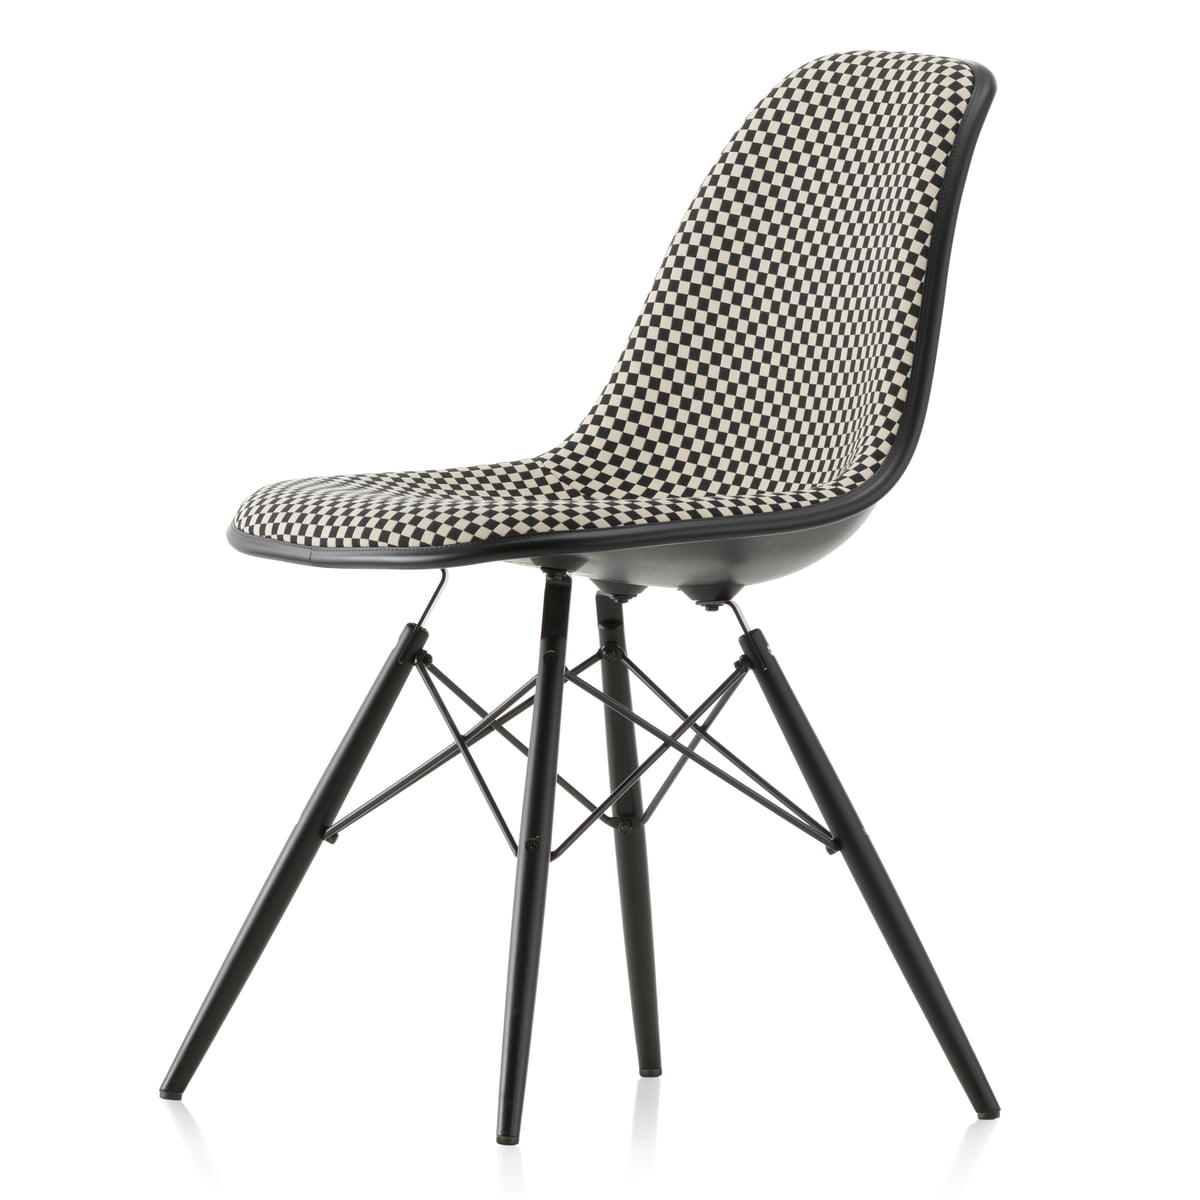 vitra eames plastic side chair dsw full upholstery. Black Bedroom Furniture Sets. Home Design Ideas